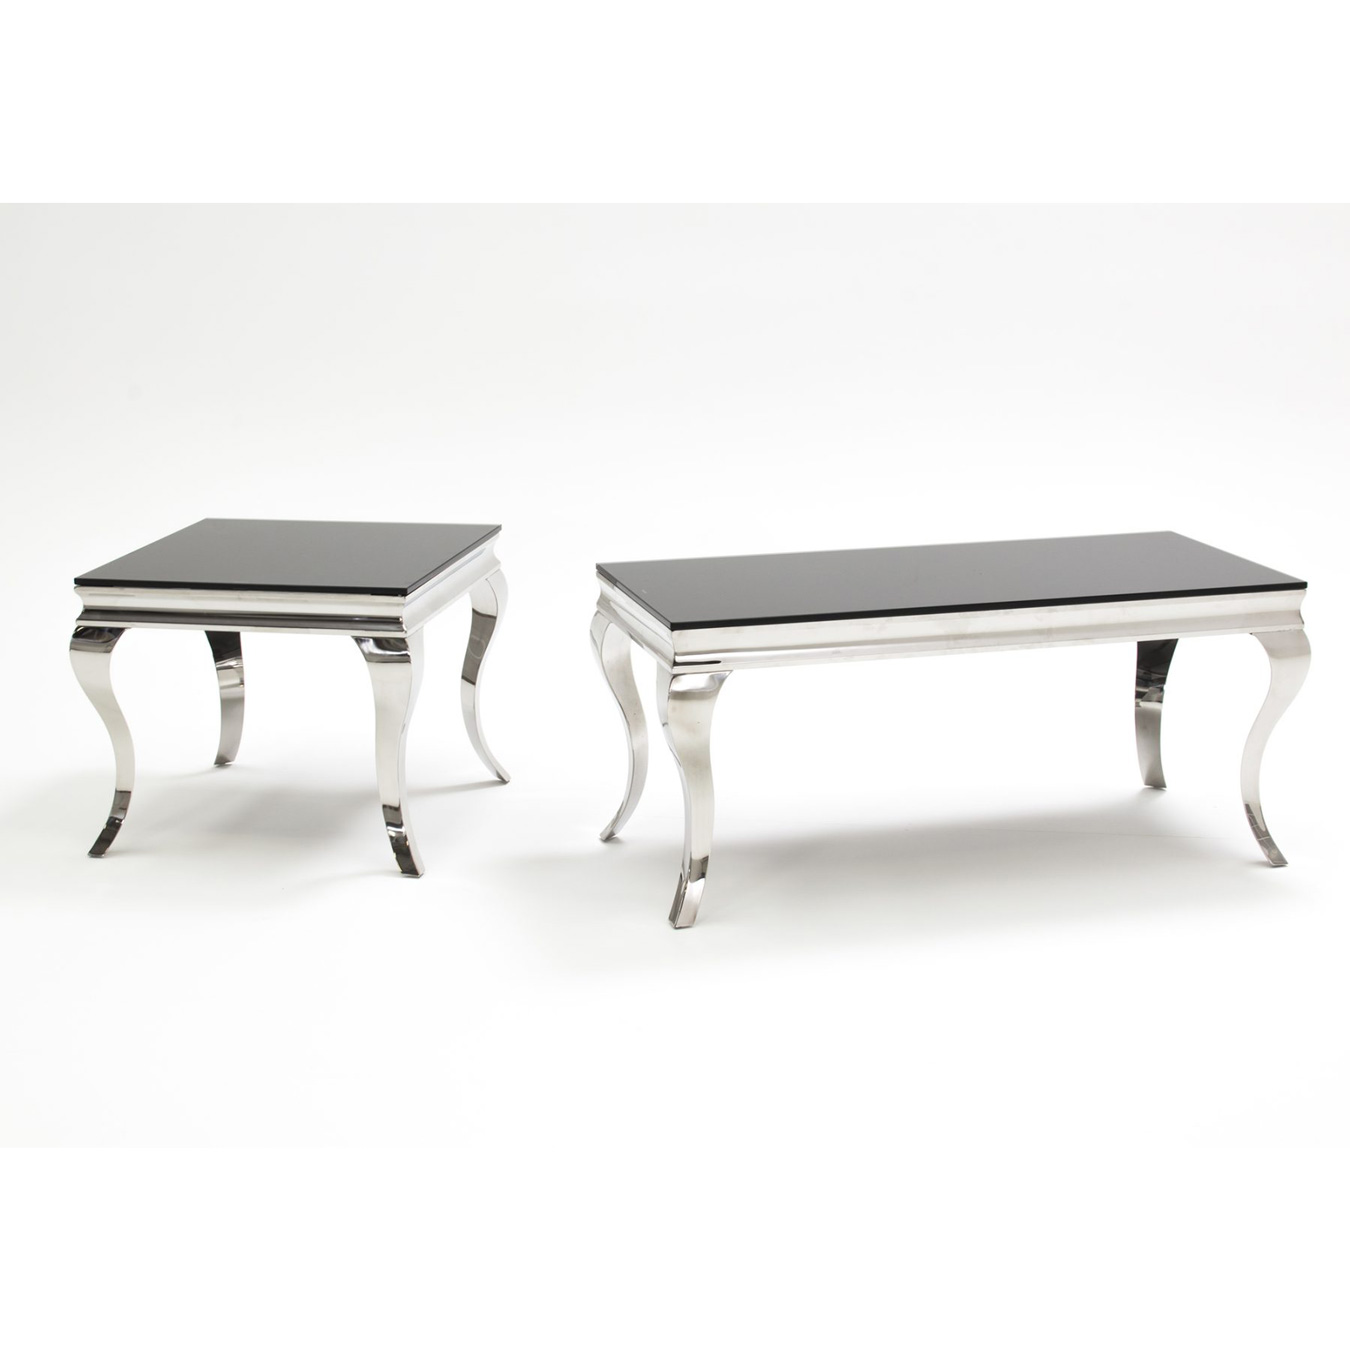 Glass Coffee Table With Stainless Steel Legs: Louis Rectangular Black Glass & Stainless Steel Coffee